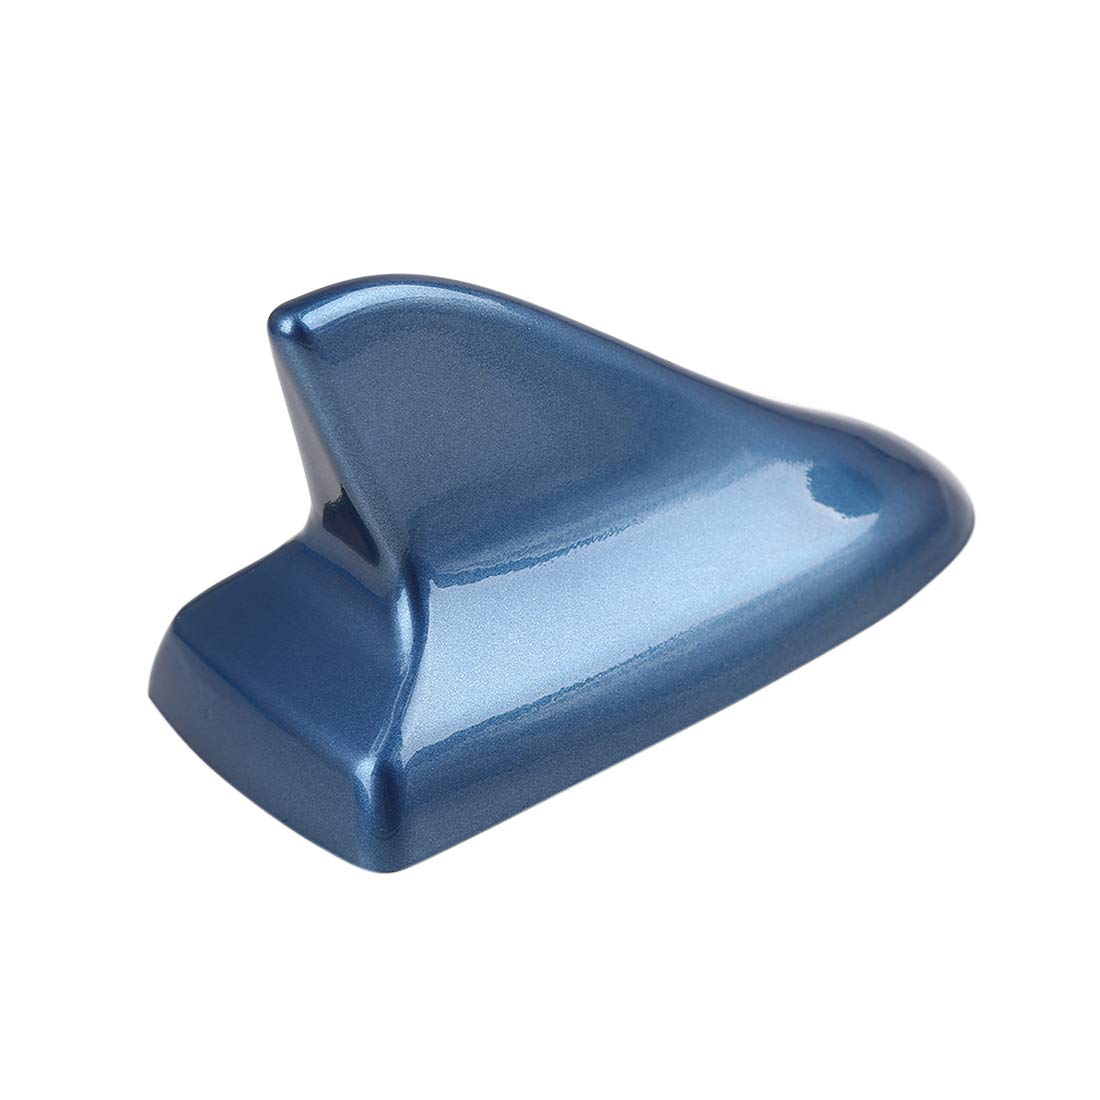 X AUTOHAUX Blue Universal Antenna Roof Shark Fin Shape Adhesive Decorative Aerial for Car